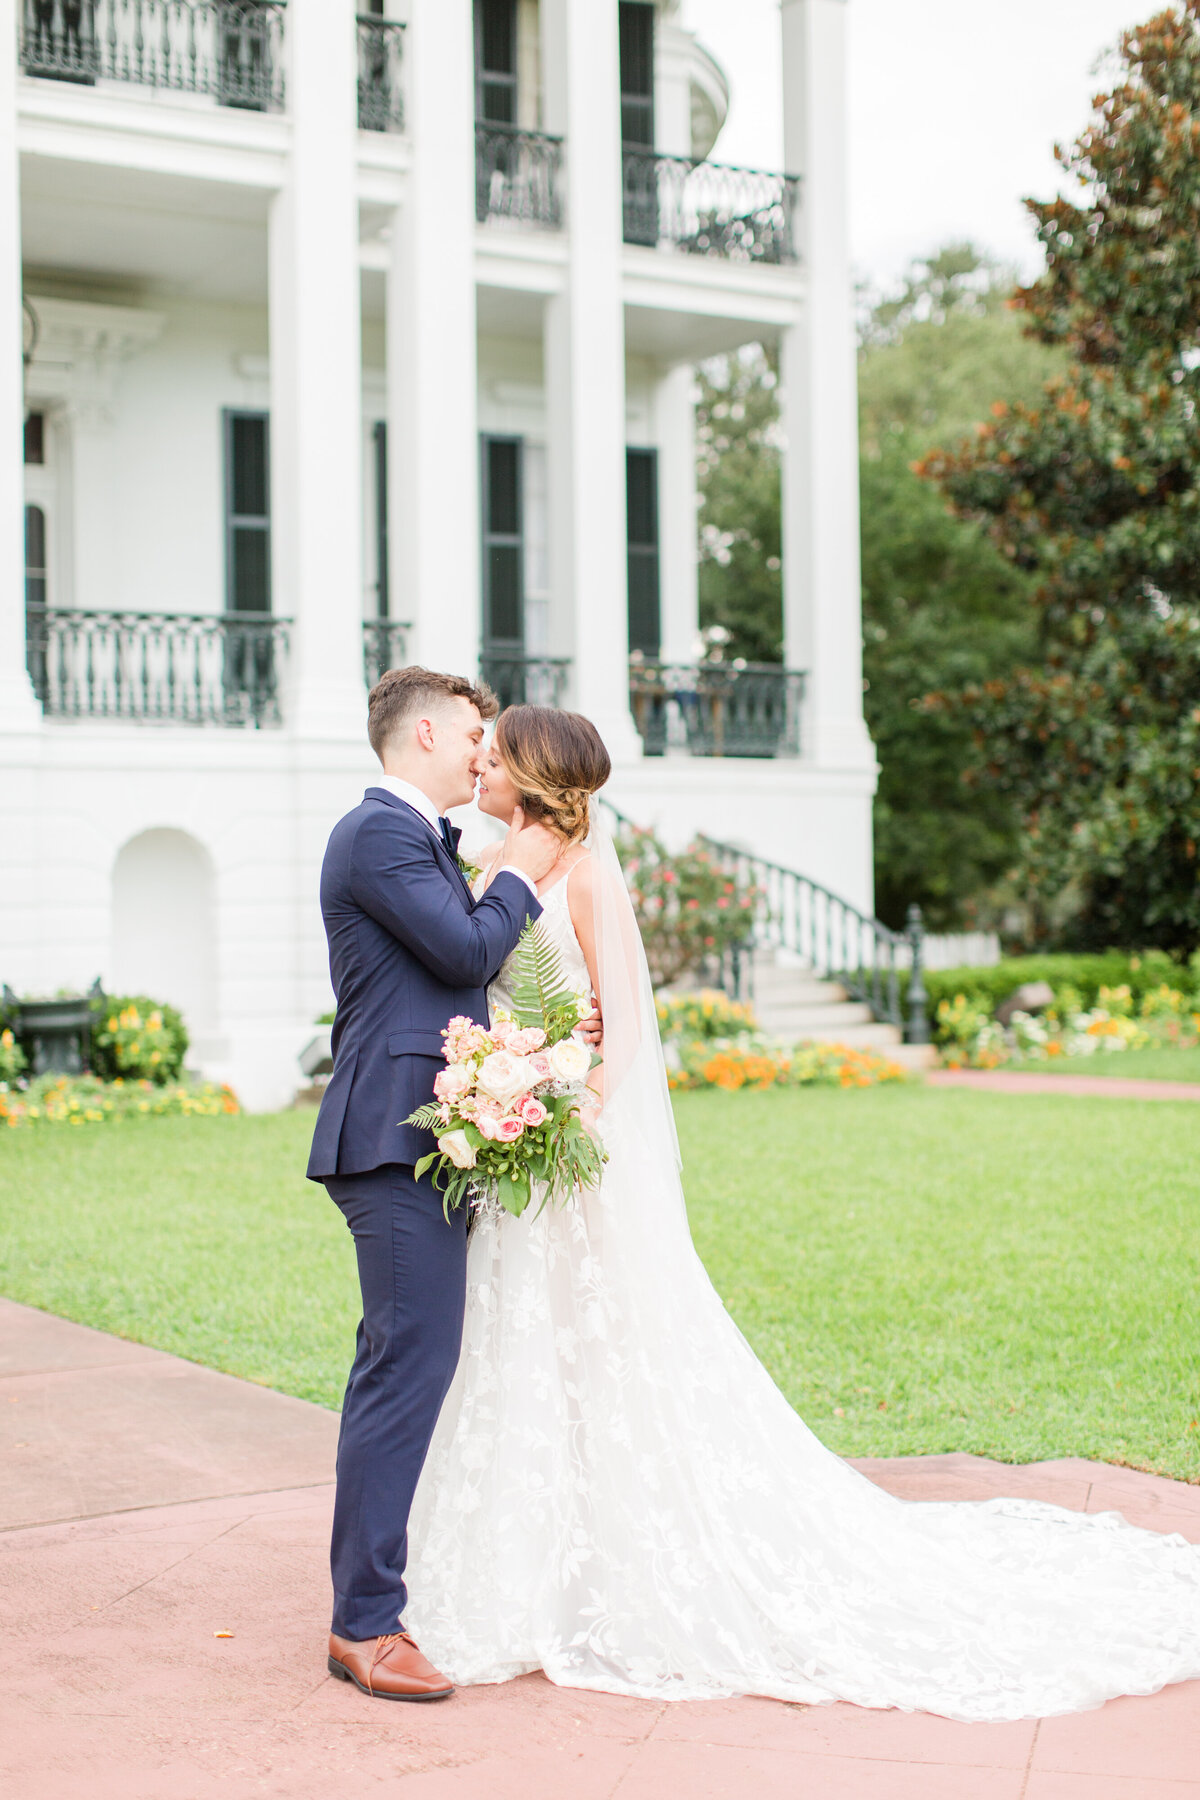 Renee Lorio Photography South Louisiana Wedding Engagement Light Airy Portrait Photographer Photos Southern Clean Colorful17